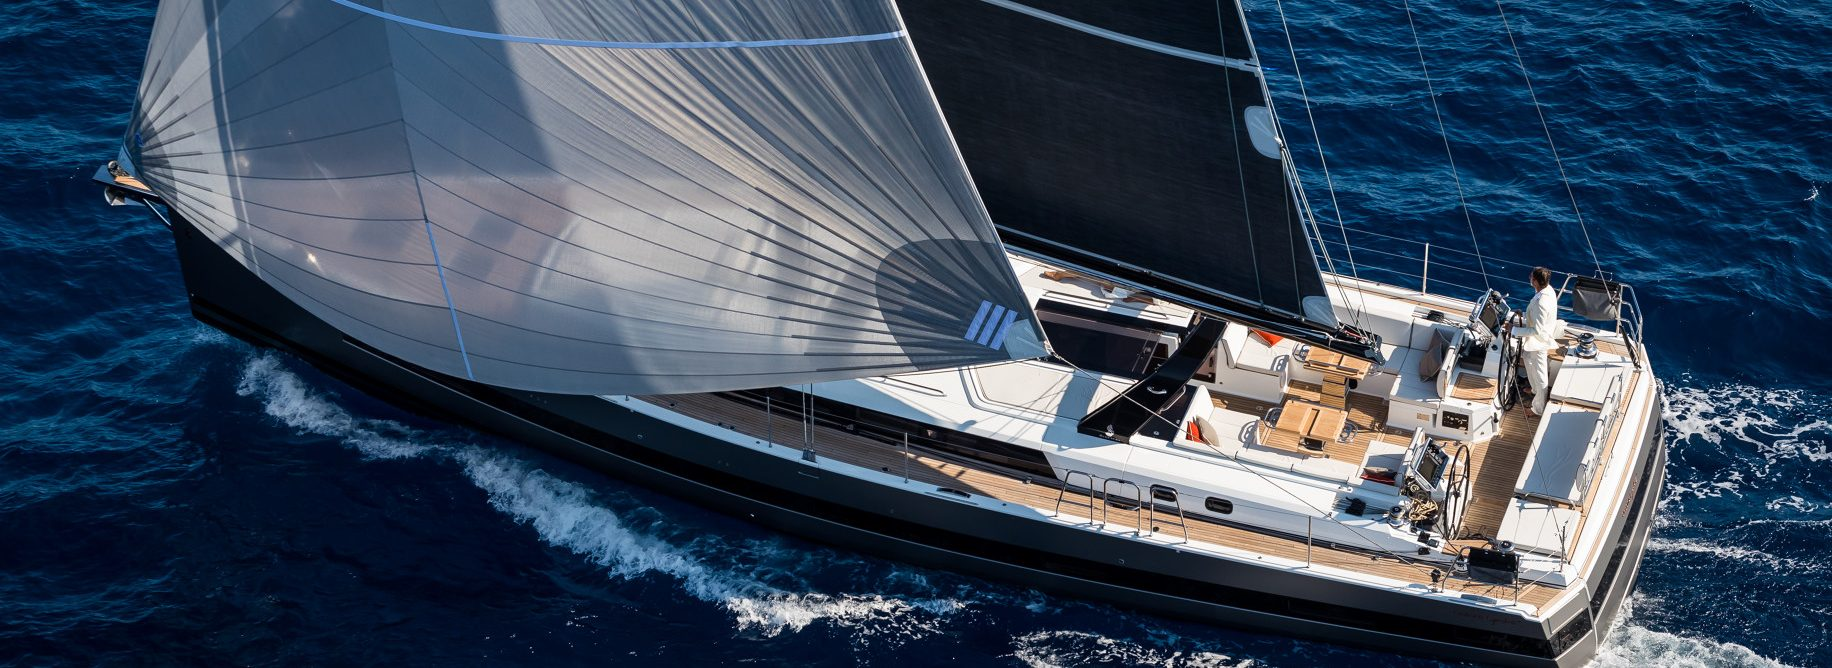 Beneteau Oceanis Yacht 62 overhead on open water